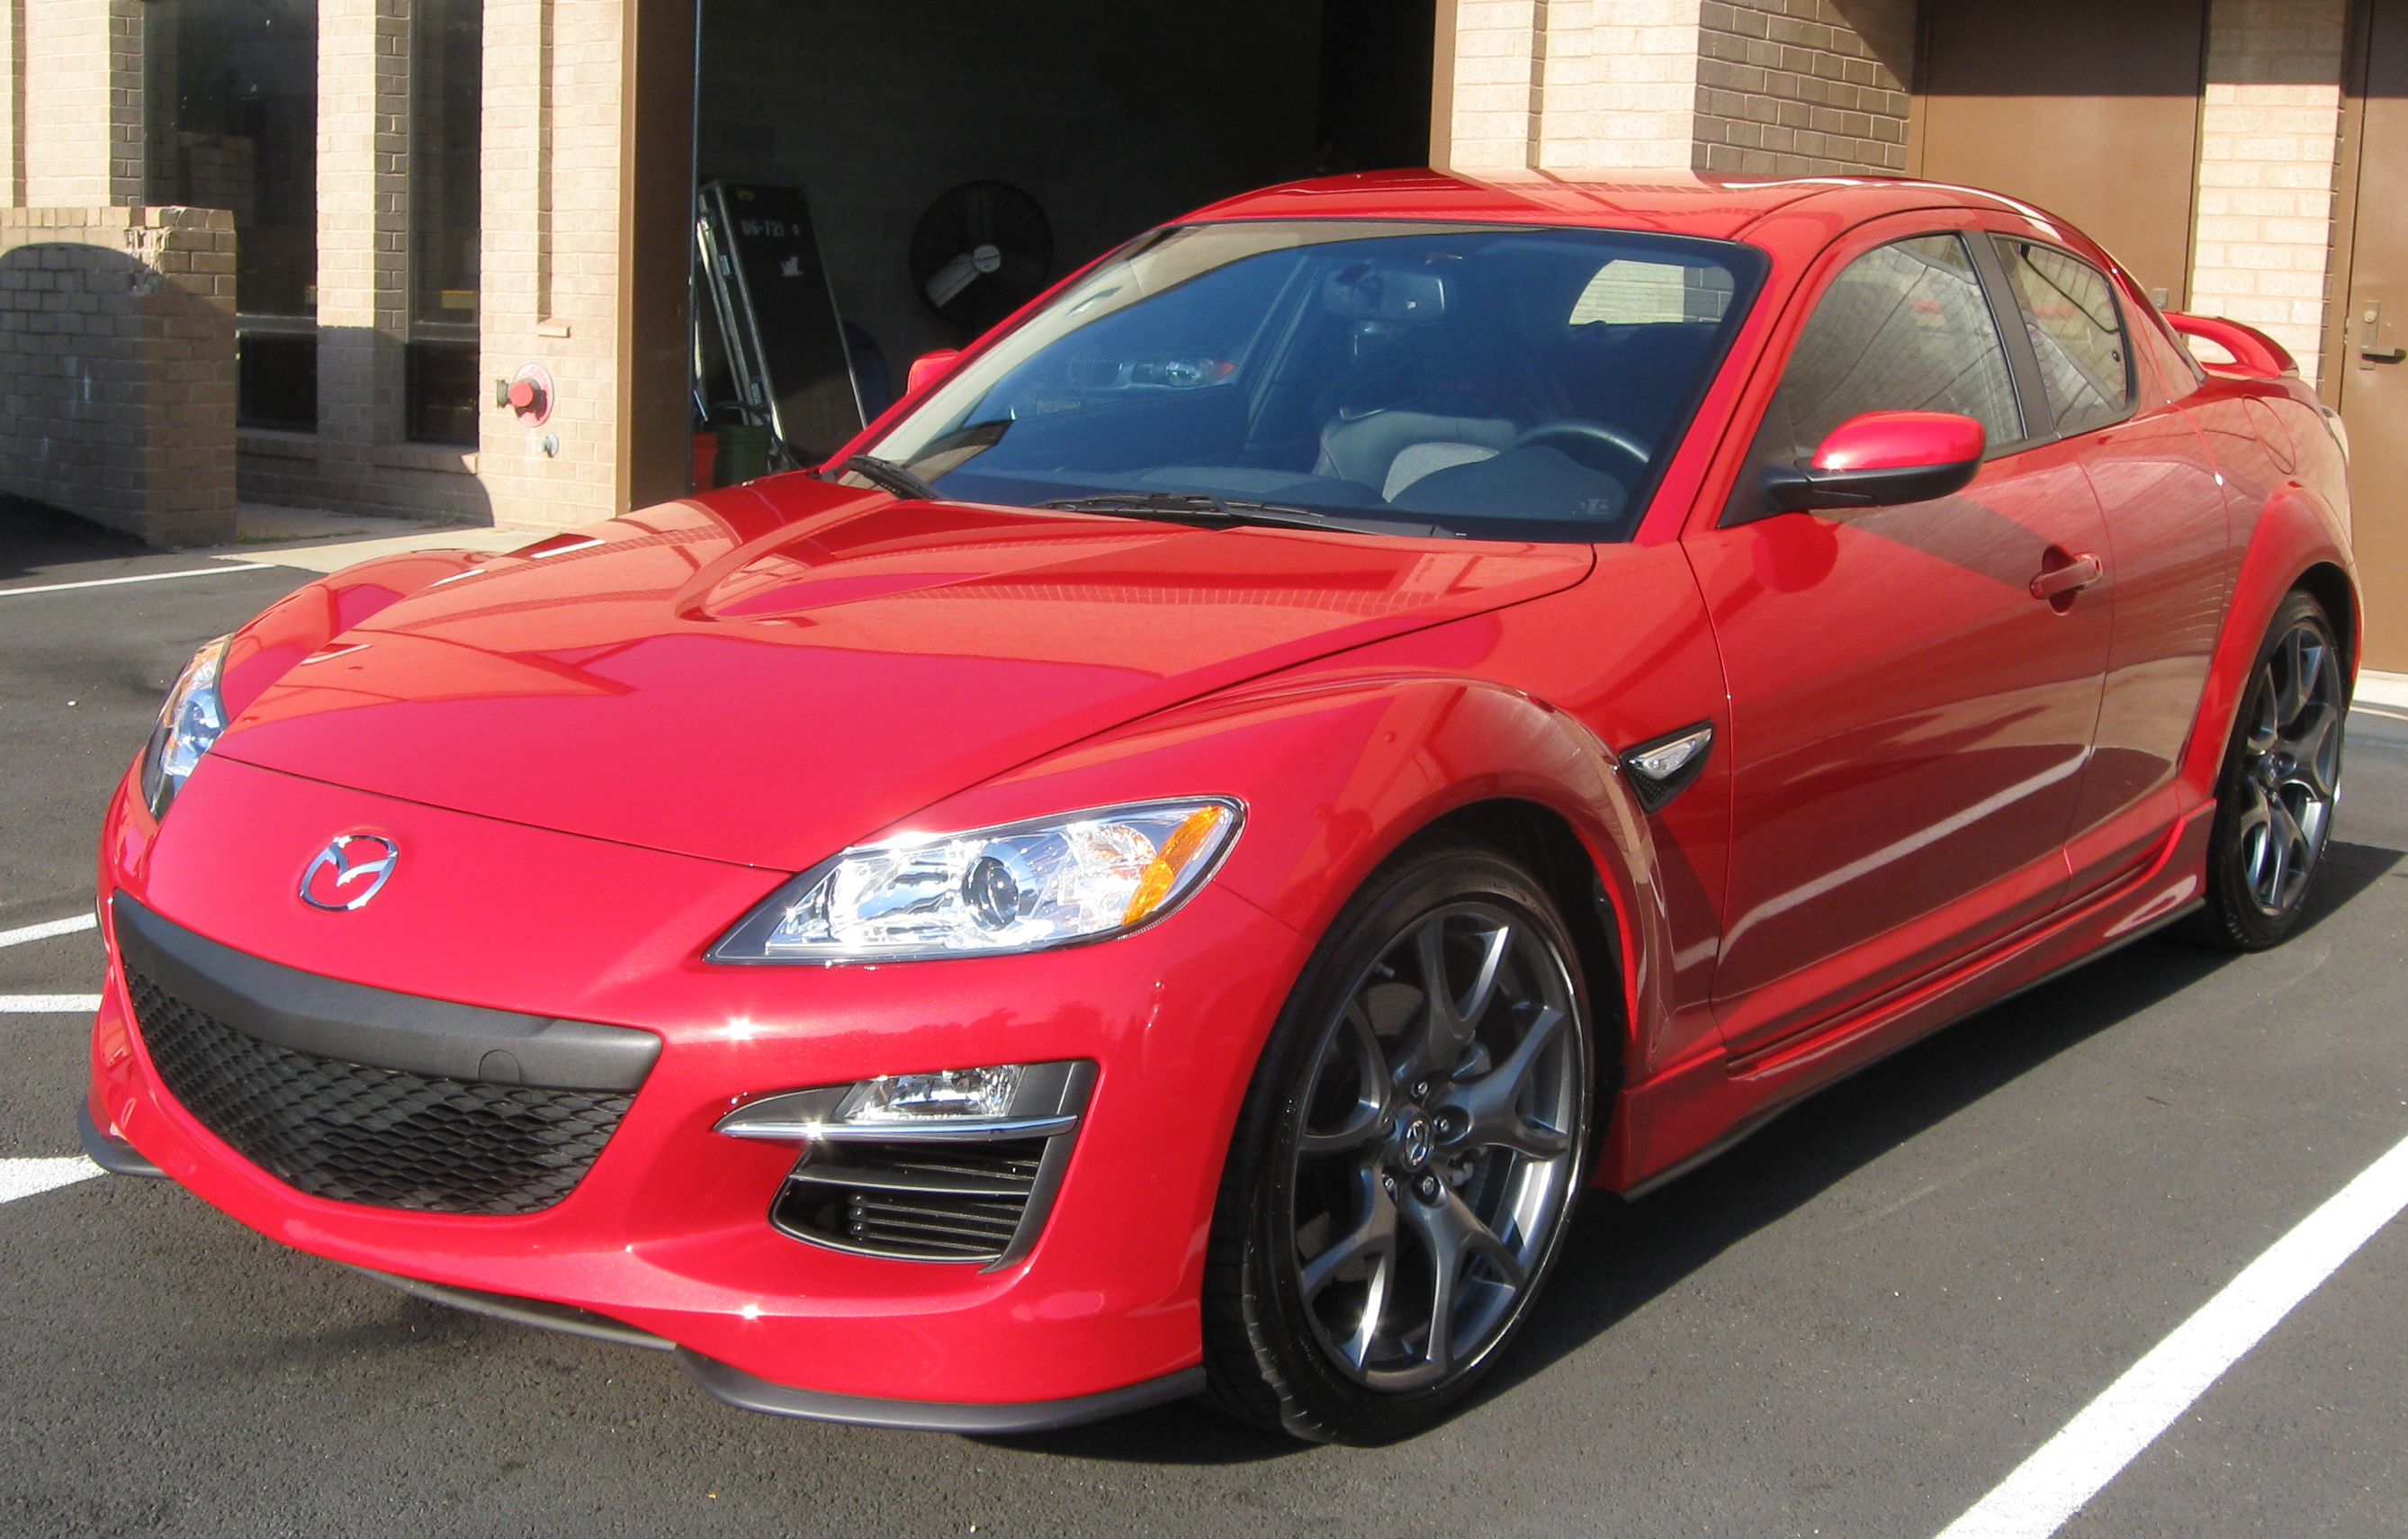 File:2010 Mazda RX-8 R3 -- 09-03-2009.jpg - Wikimedia Commons